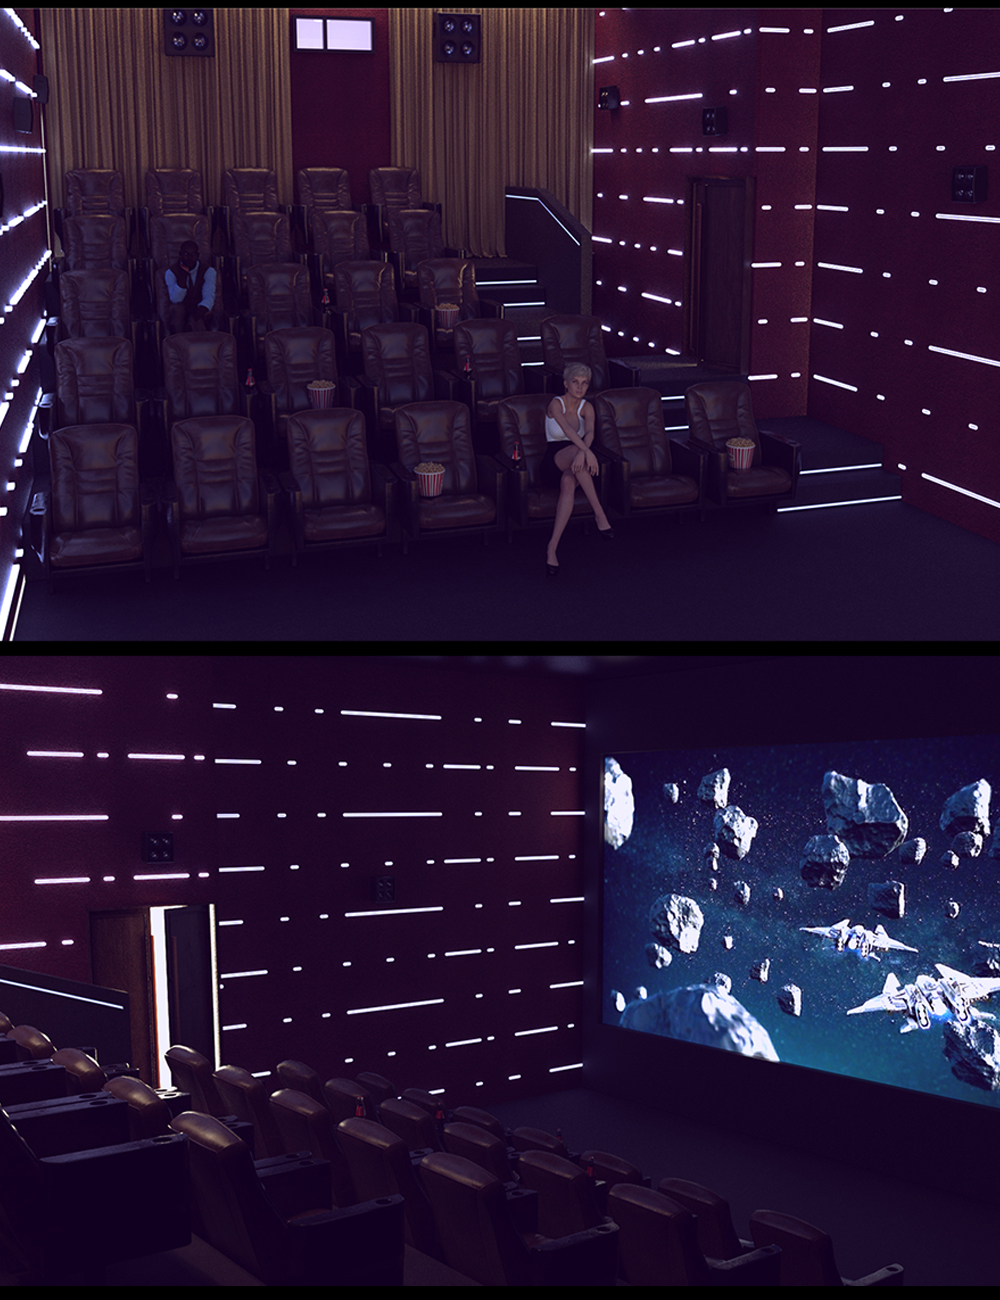 Weekend Movie Theater by: Polish, 3D Models by Daz 3D